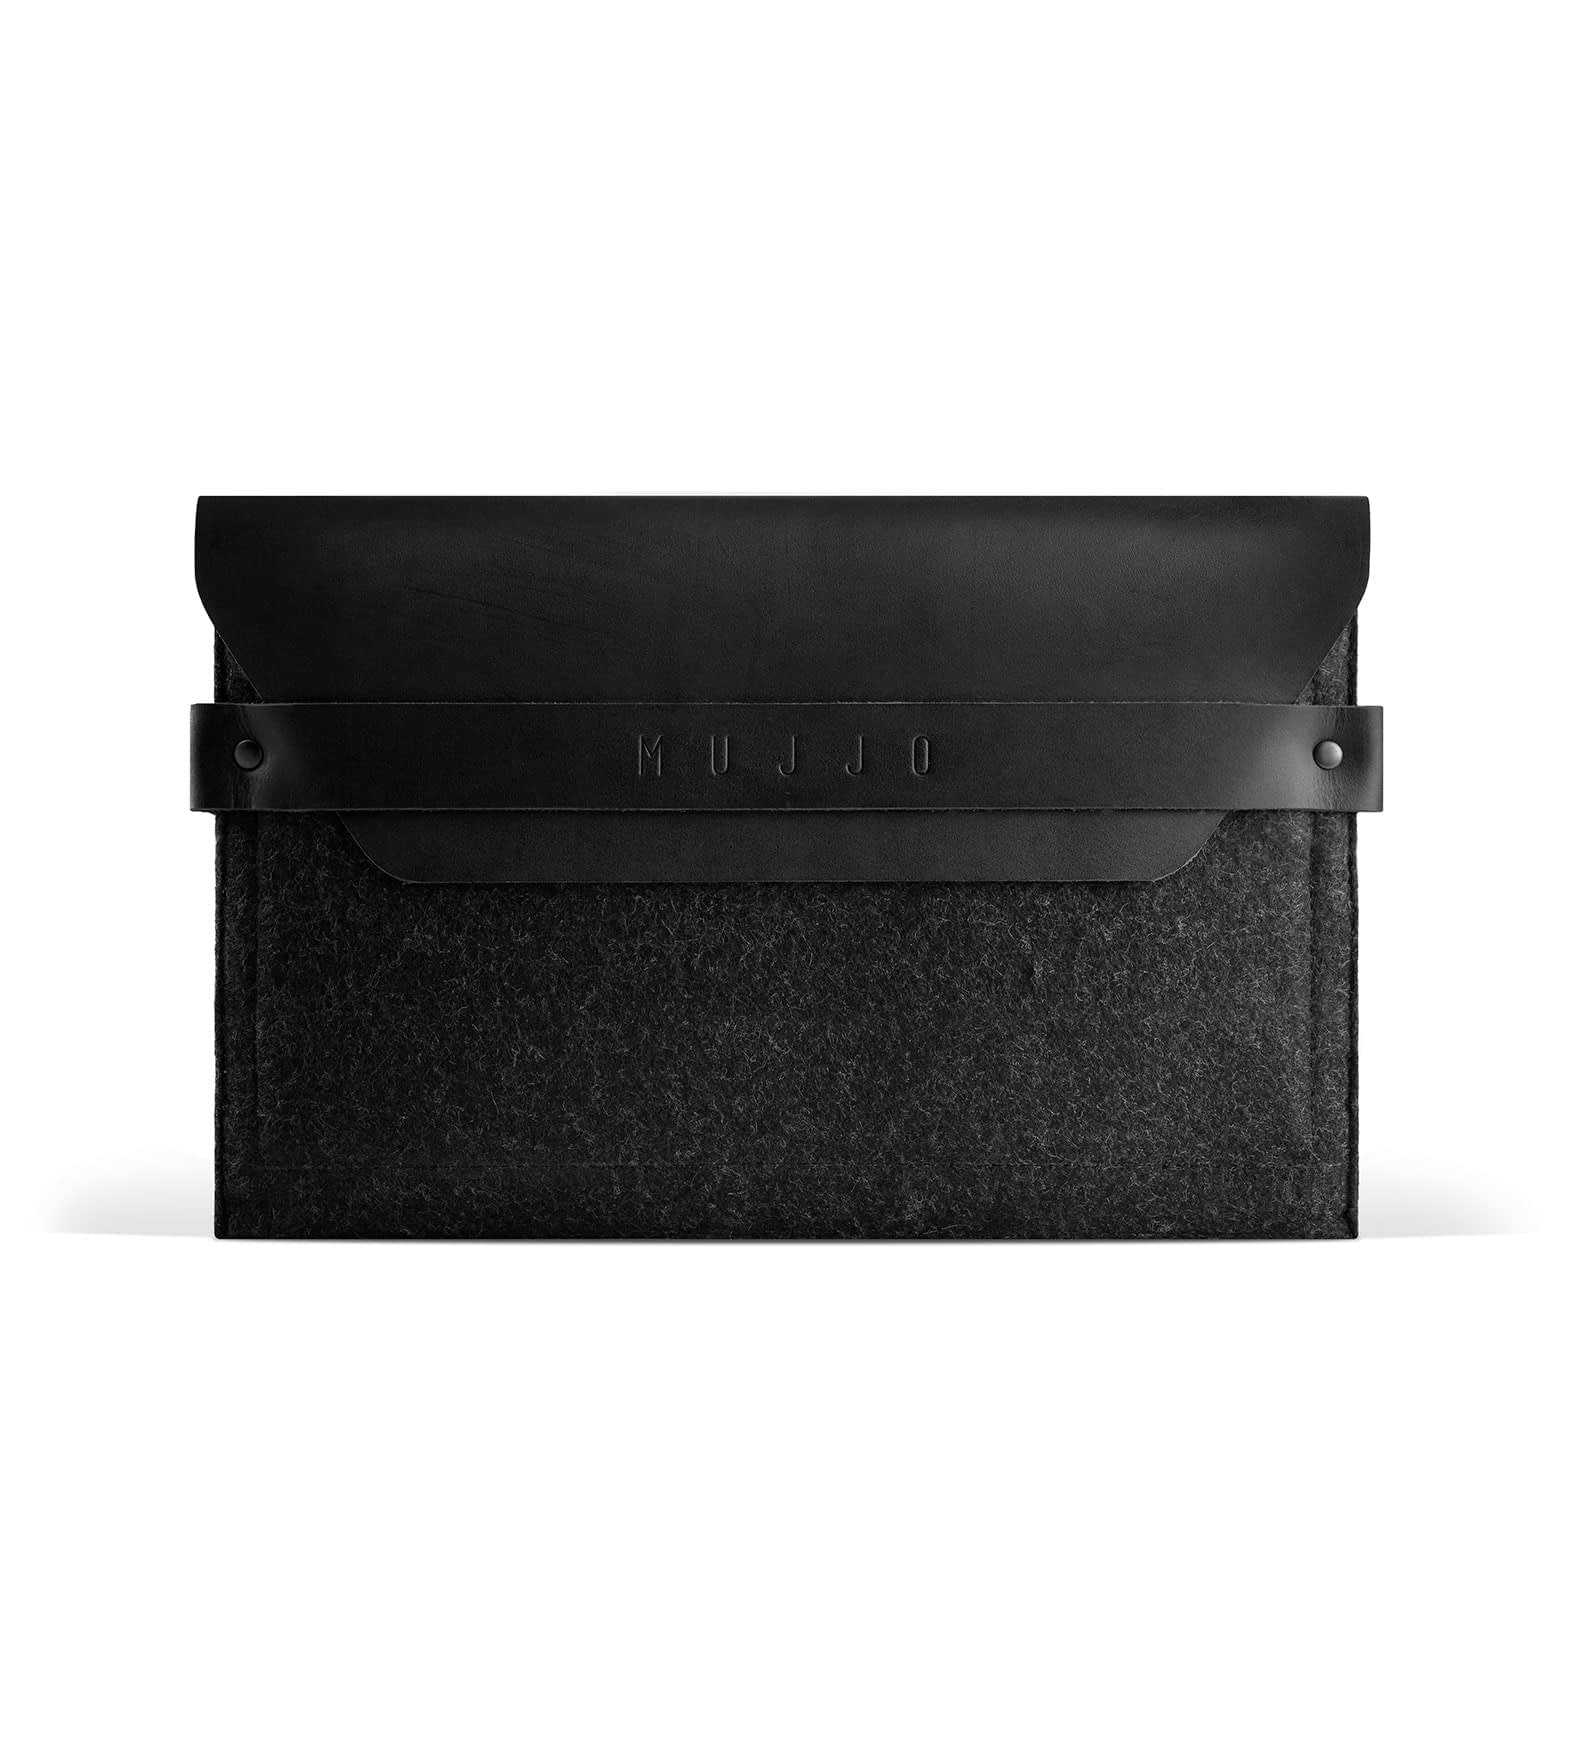 ipad mini envelope sleeve   black   studio   001